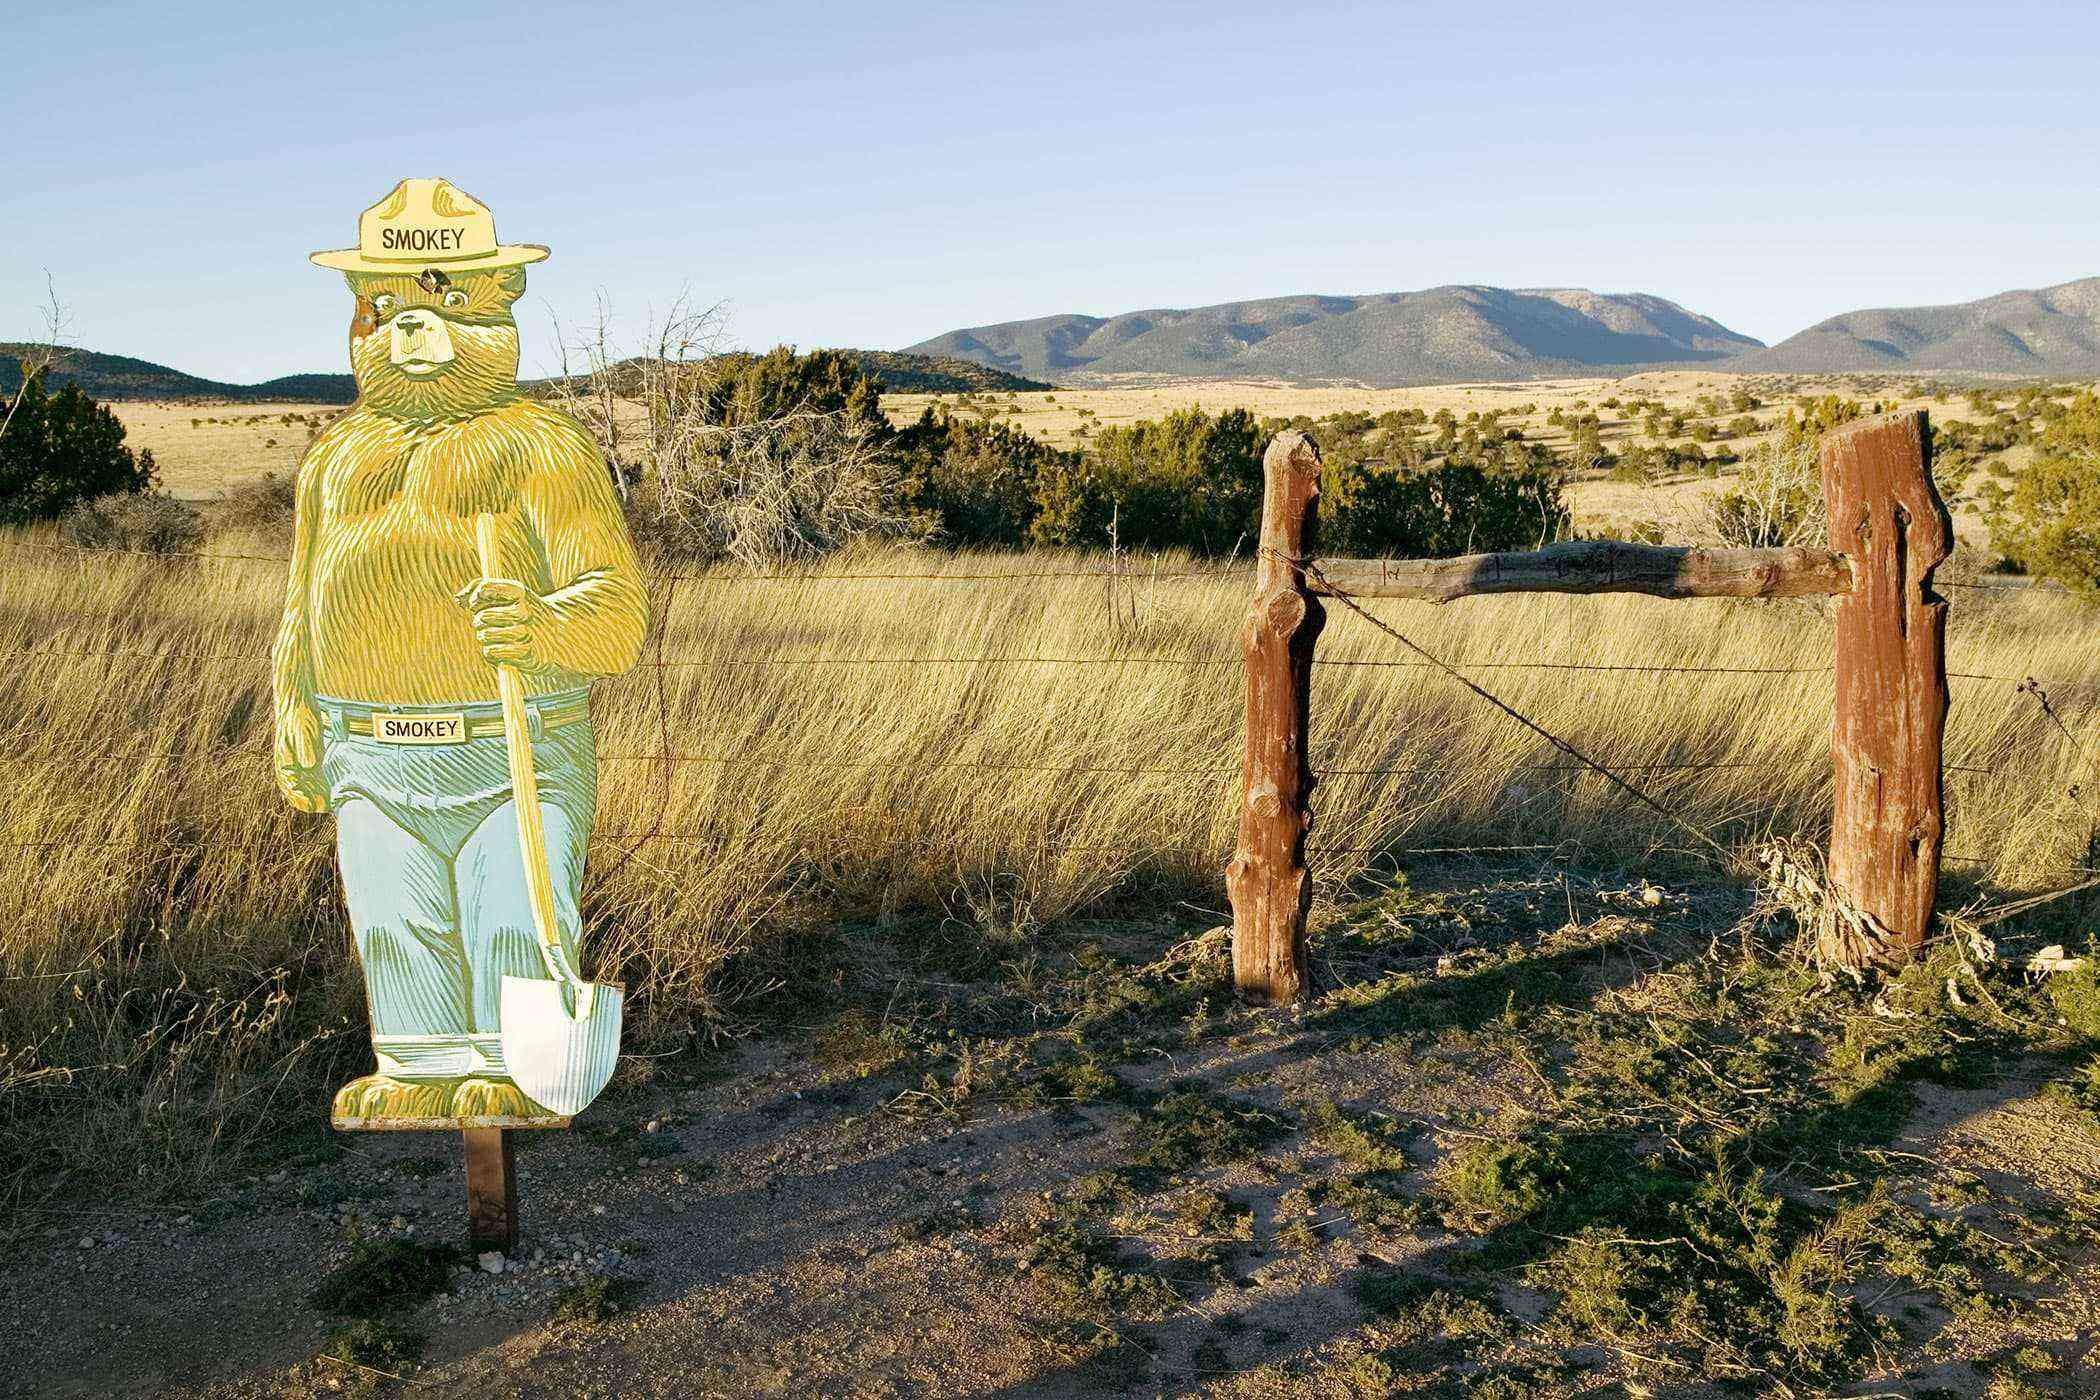 Quirky-Southwest-Museums-Smokey-Bear-Historical-Park